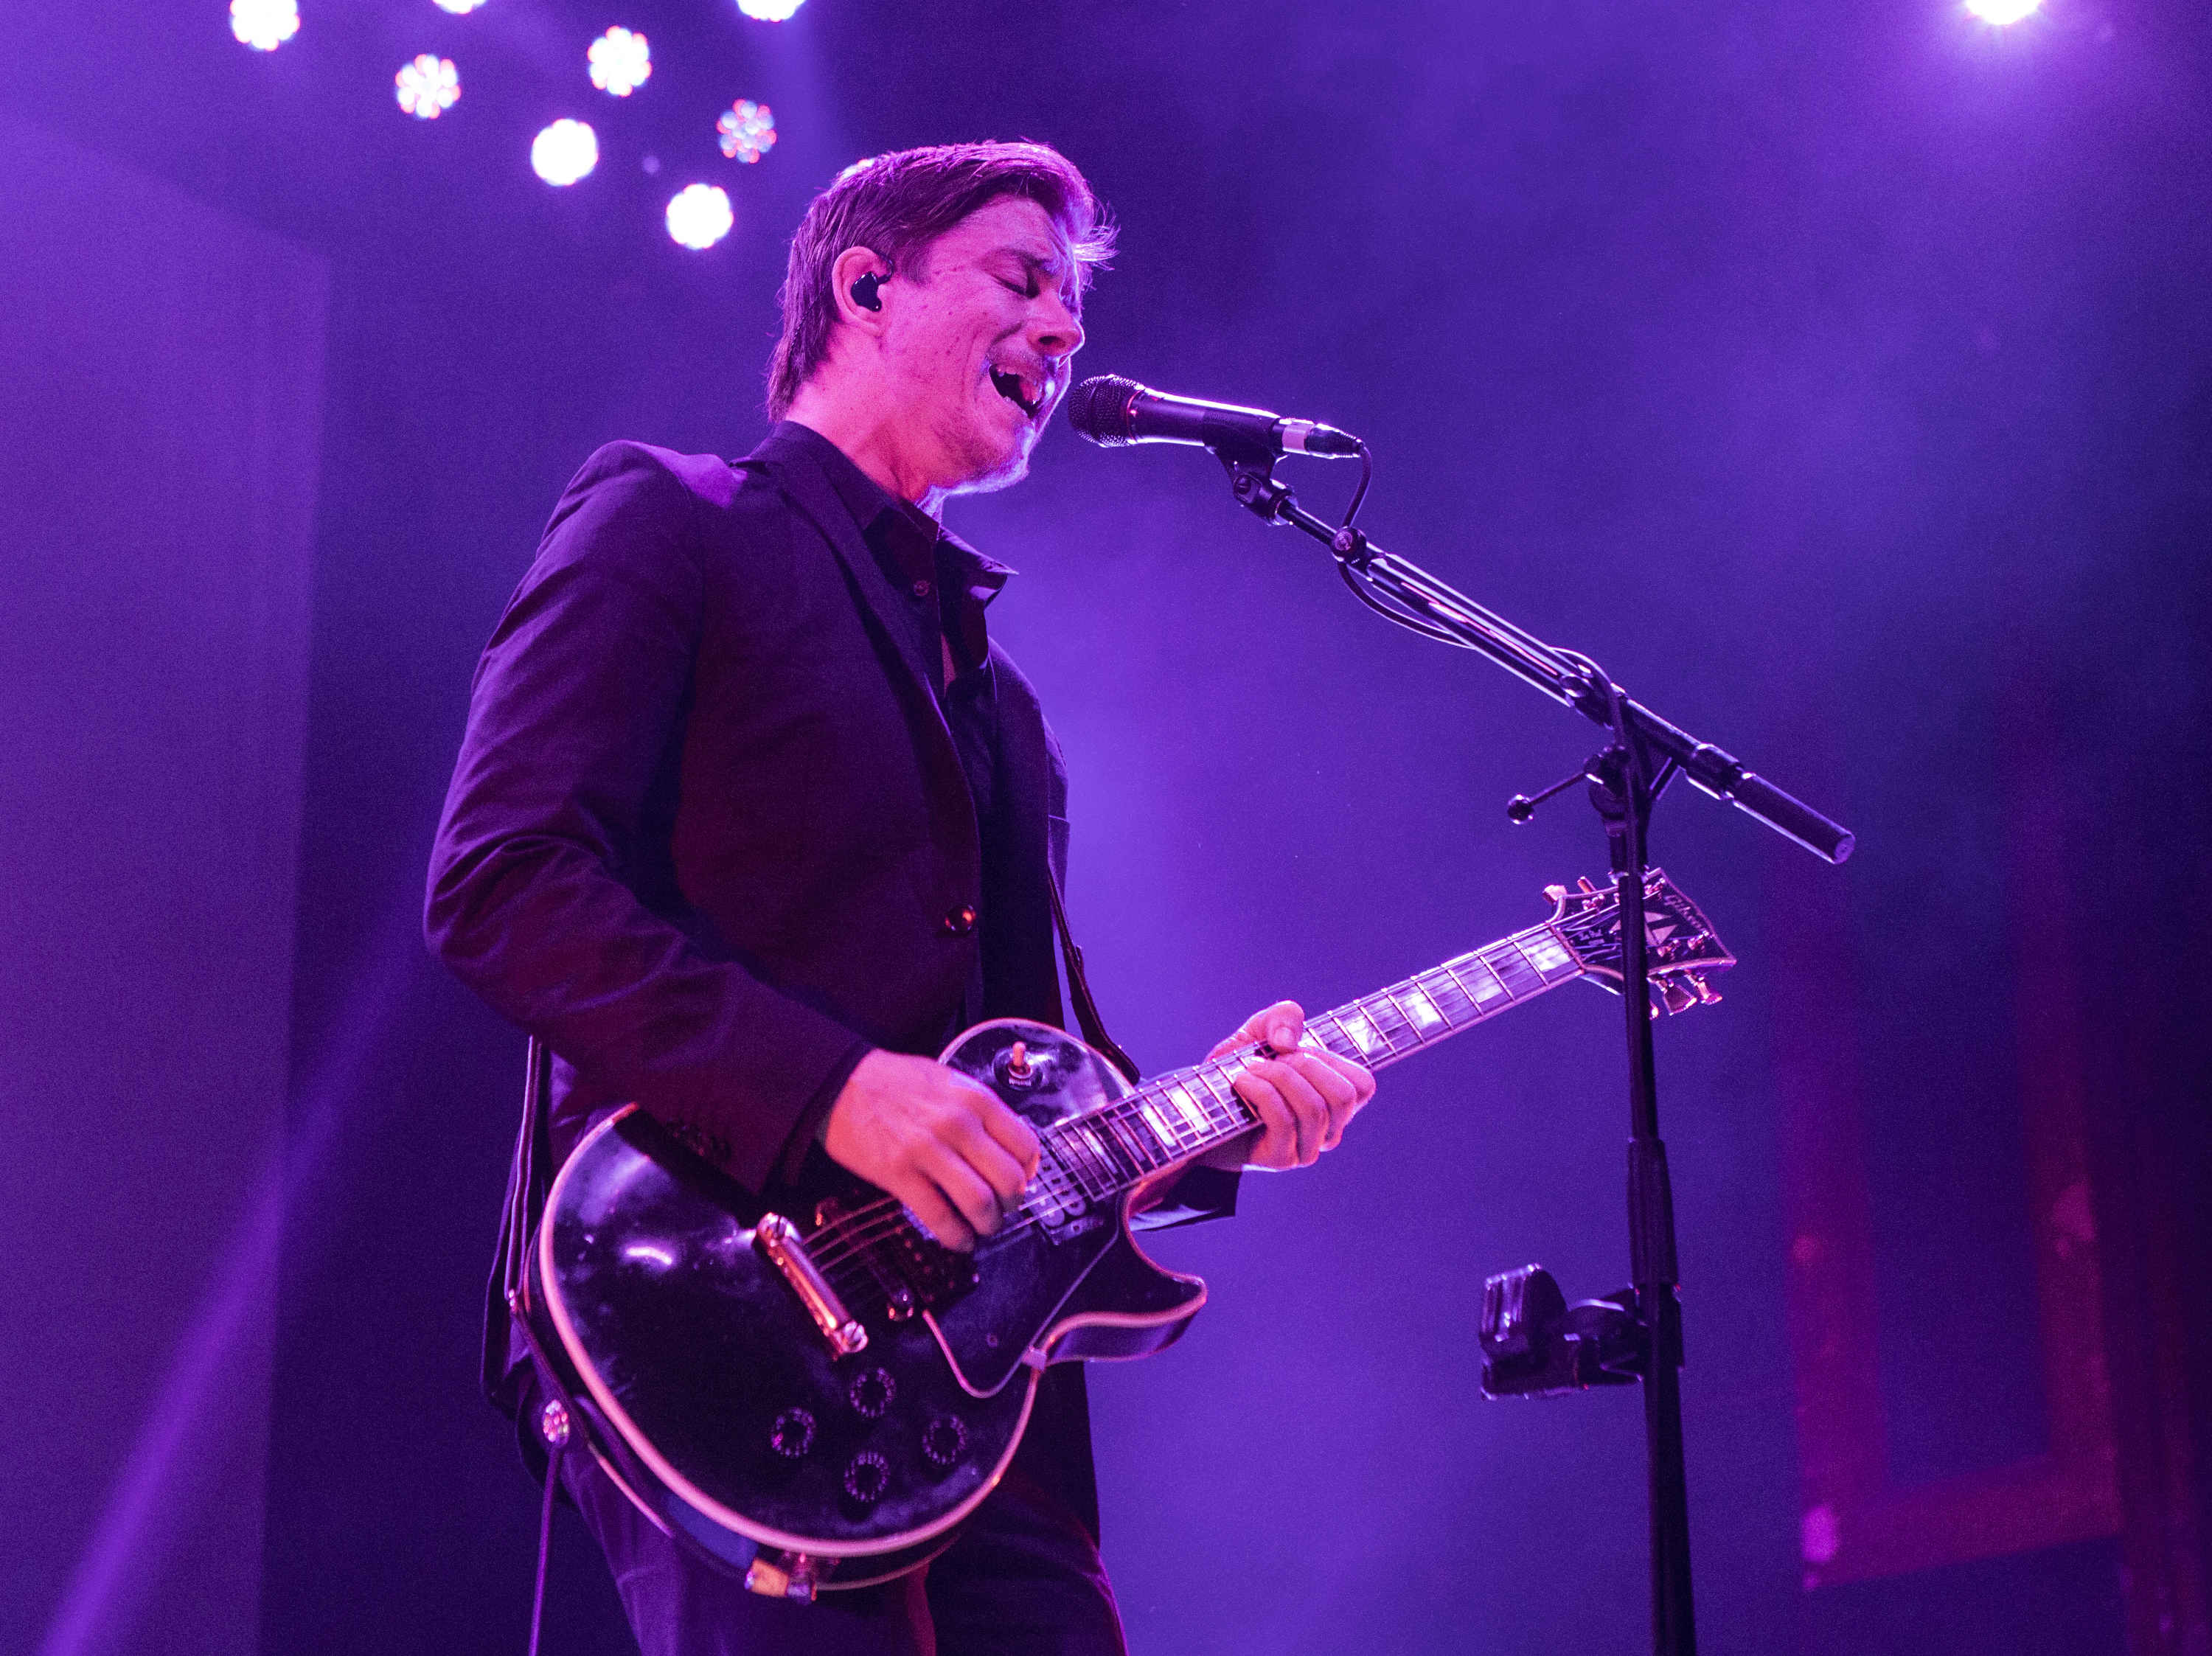 Paul Banks with Interpol perform at the Tabernacle in Atlanta on Nov. 10, 2014